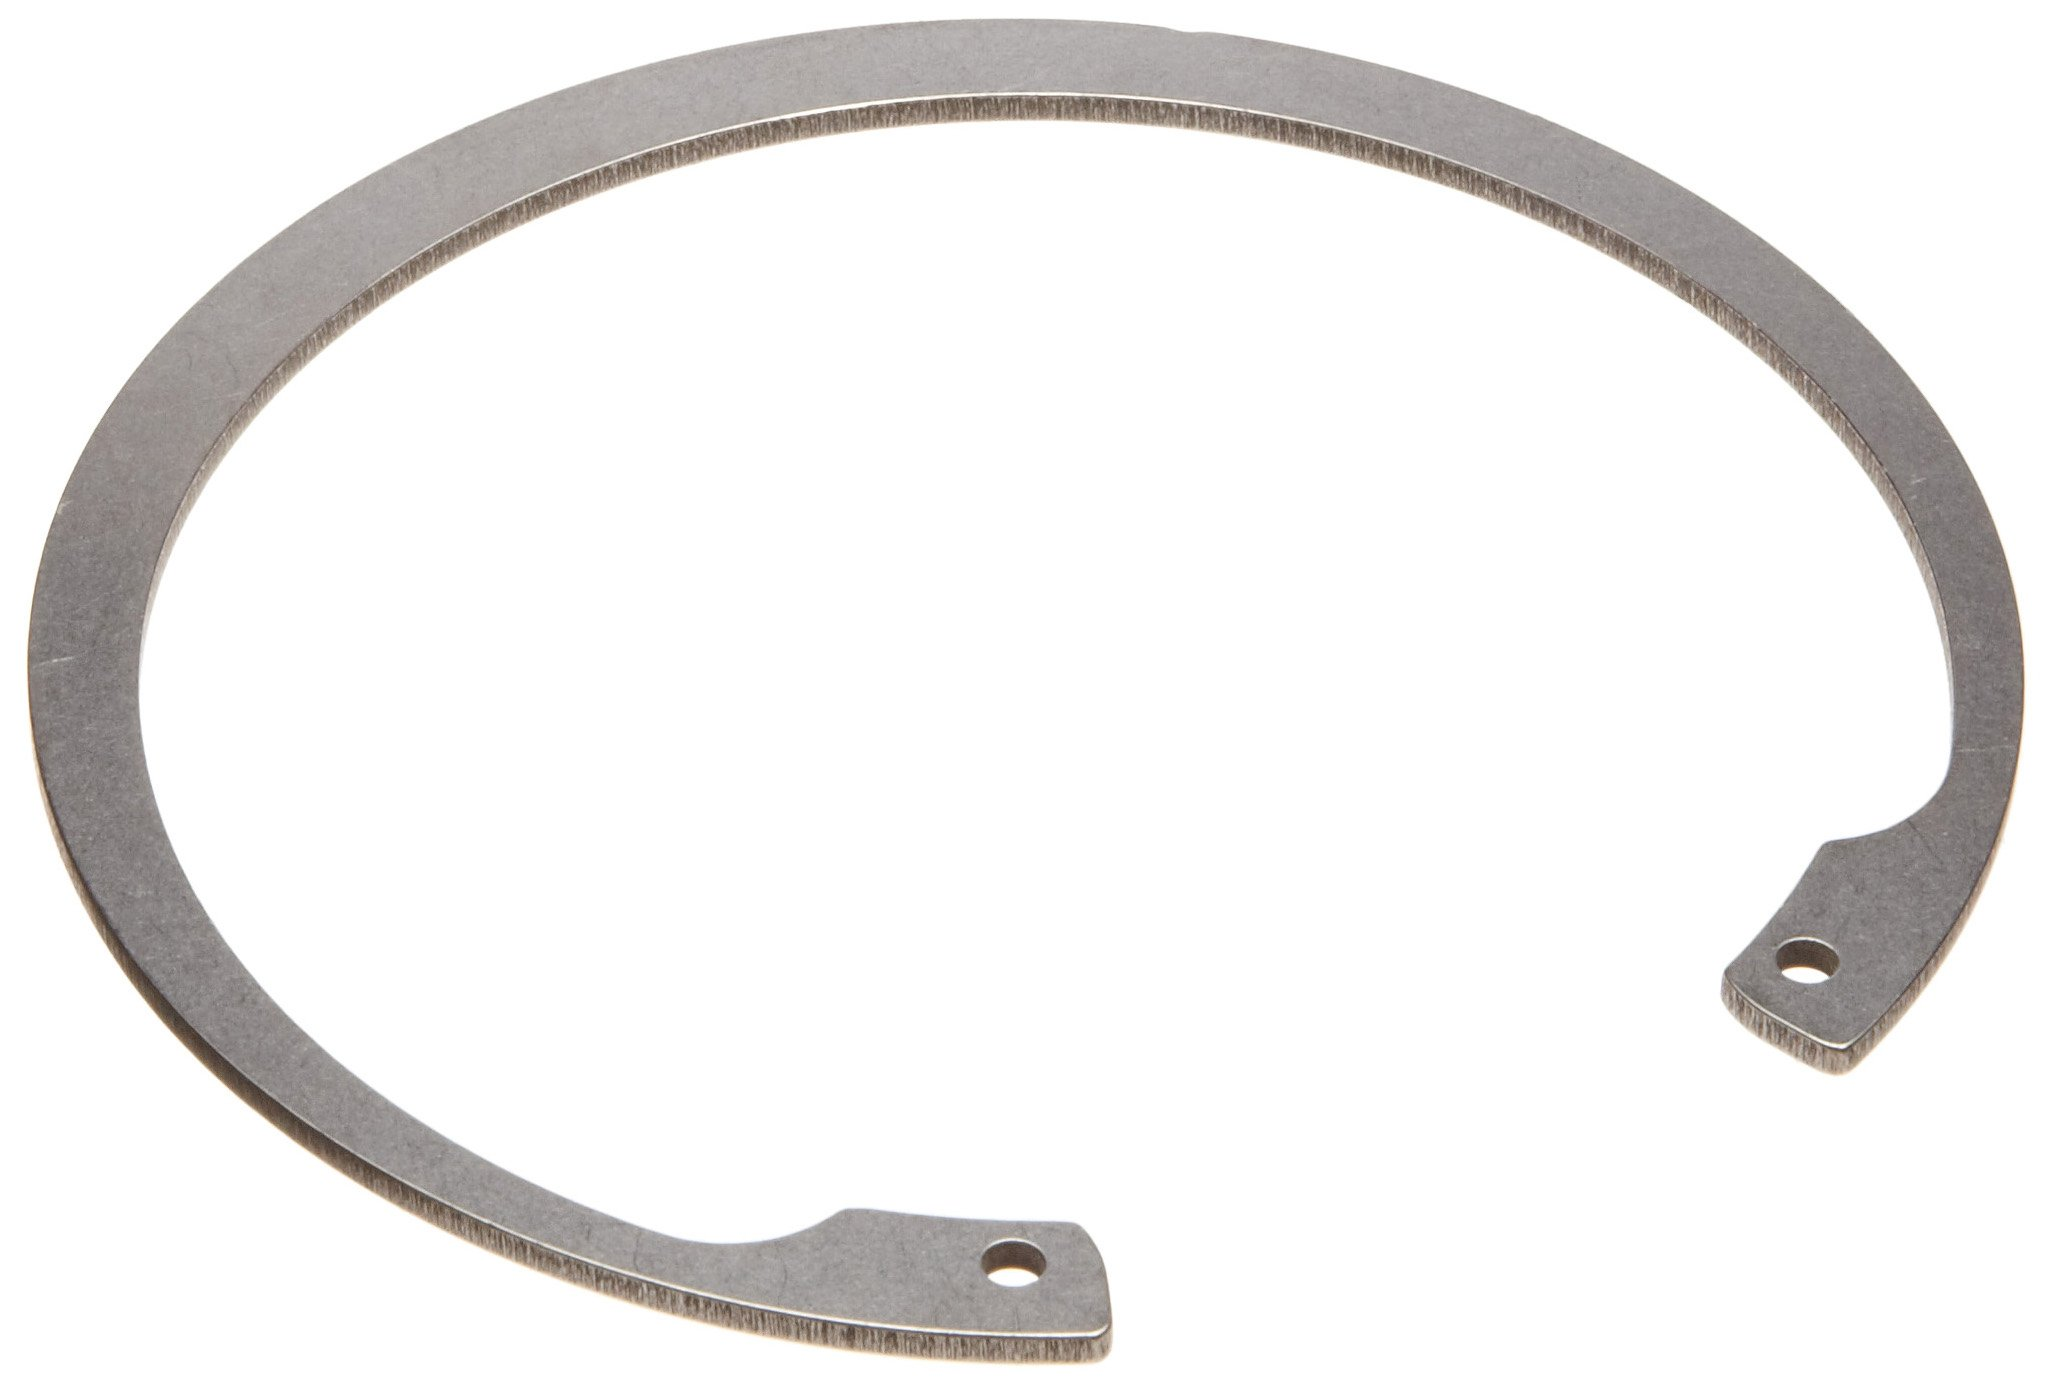 Standard Internal Retaining Ring, Tapered Section, PH17-7 Stainless Steel, Passivated Finish, 4'' Bore Diameter, 0.109'' Thick, Made in US